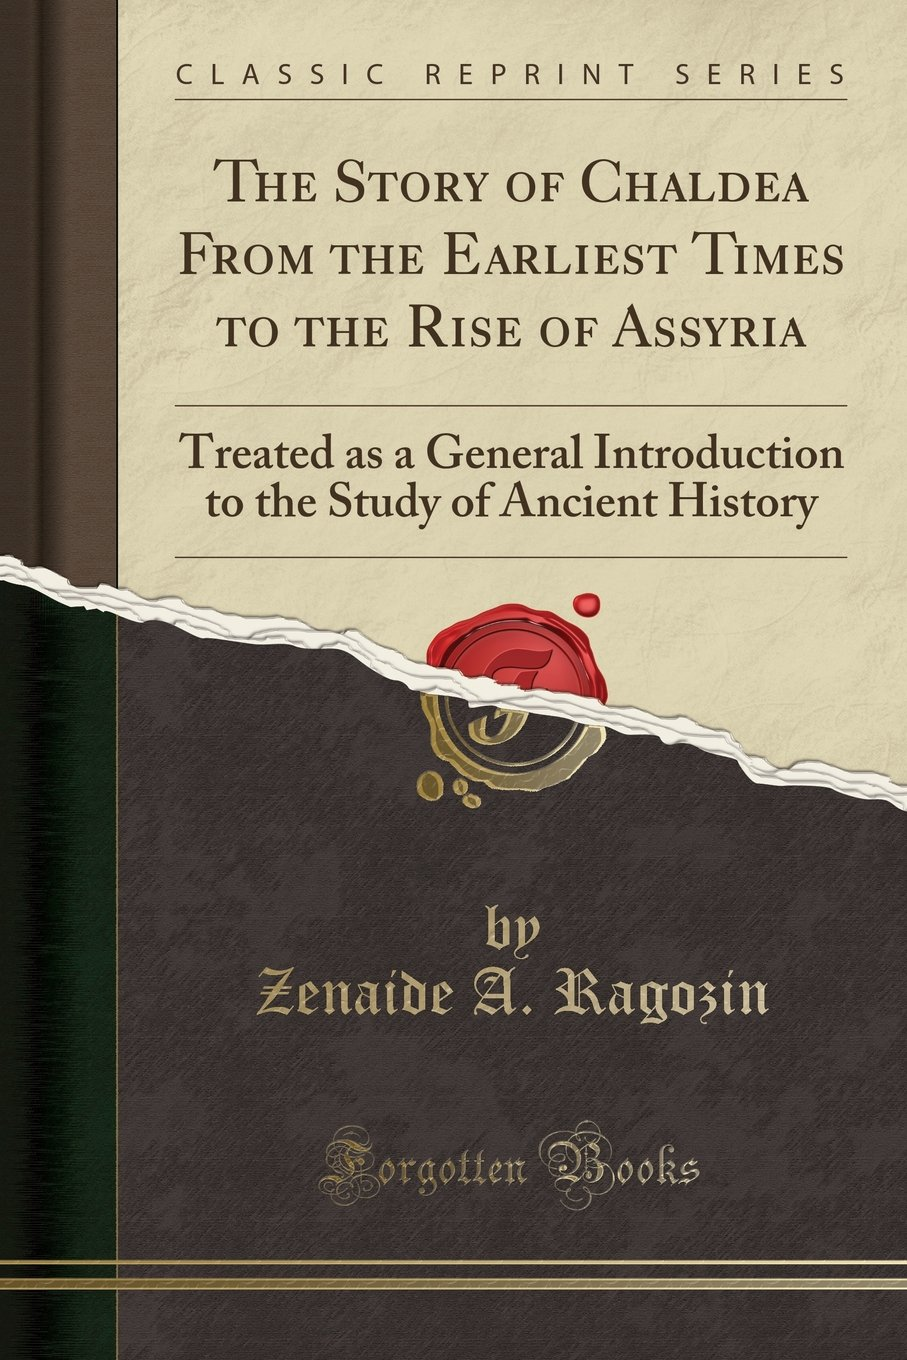 The Story of Chaldea From the Earliest Times to the Rise of Assyria: Treated as a General Introduction to the Study of Ancient History (Classic Reprint)